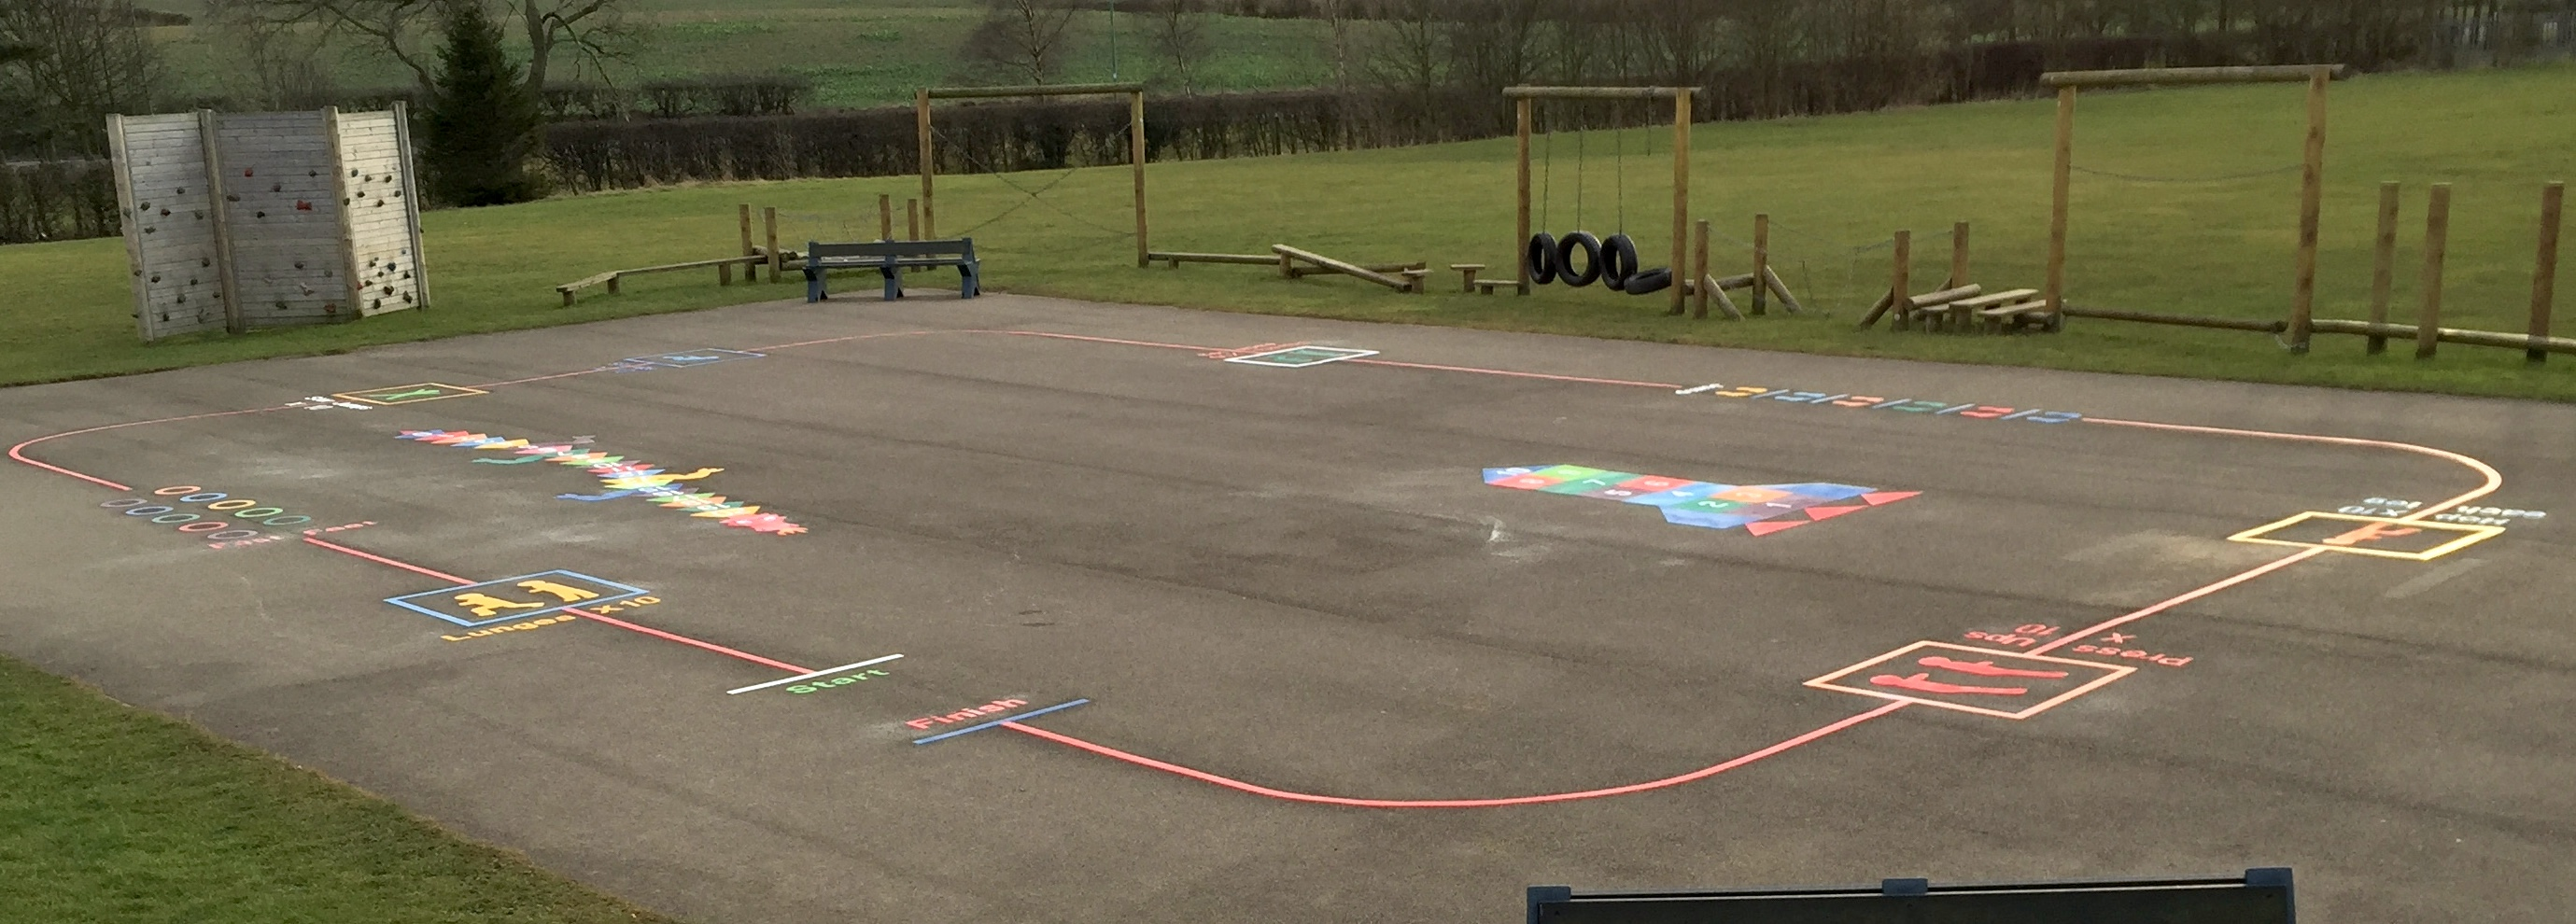 Playground exercise trail